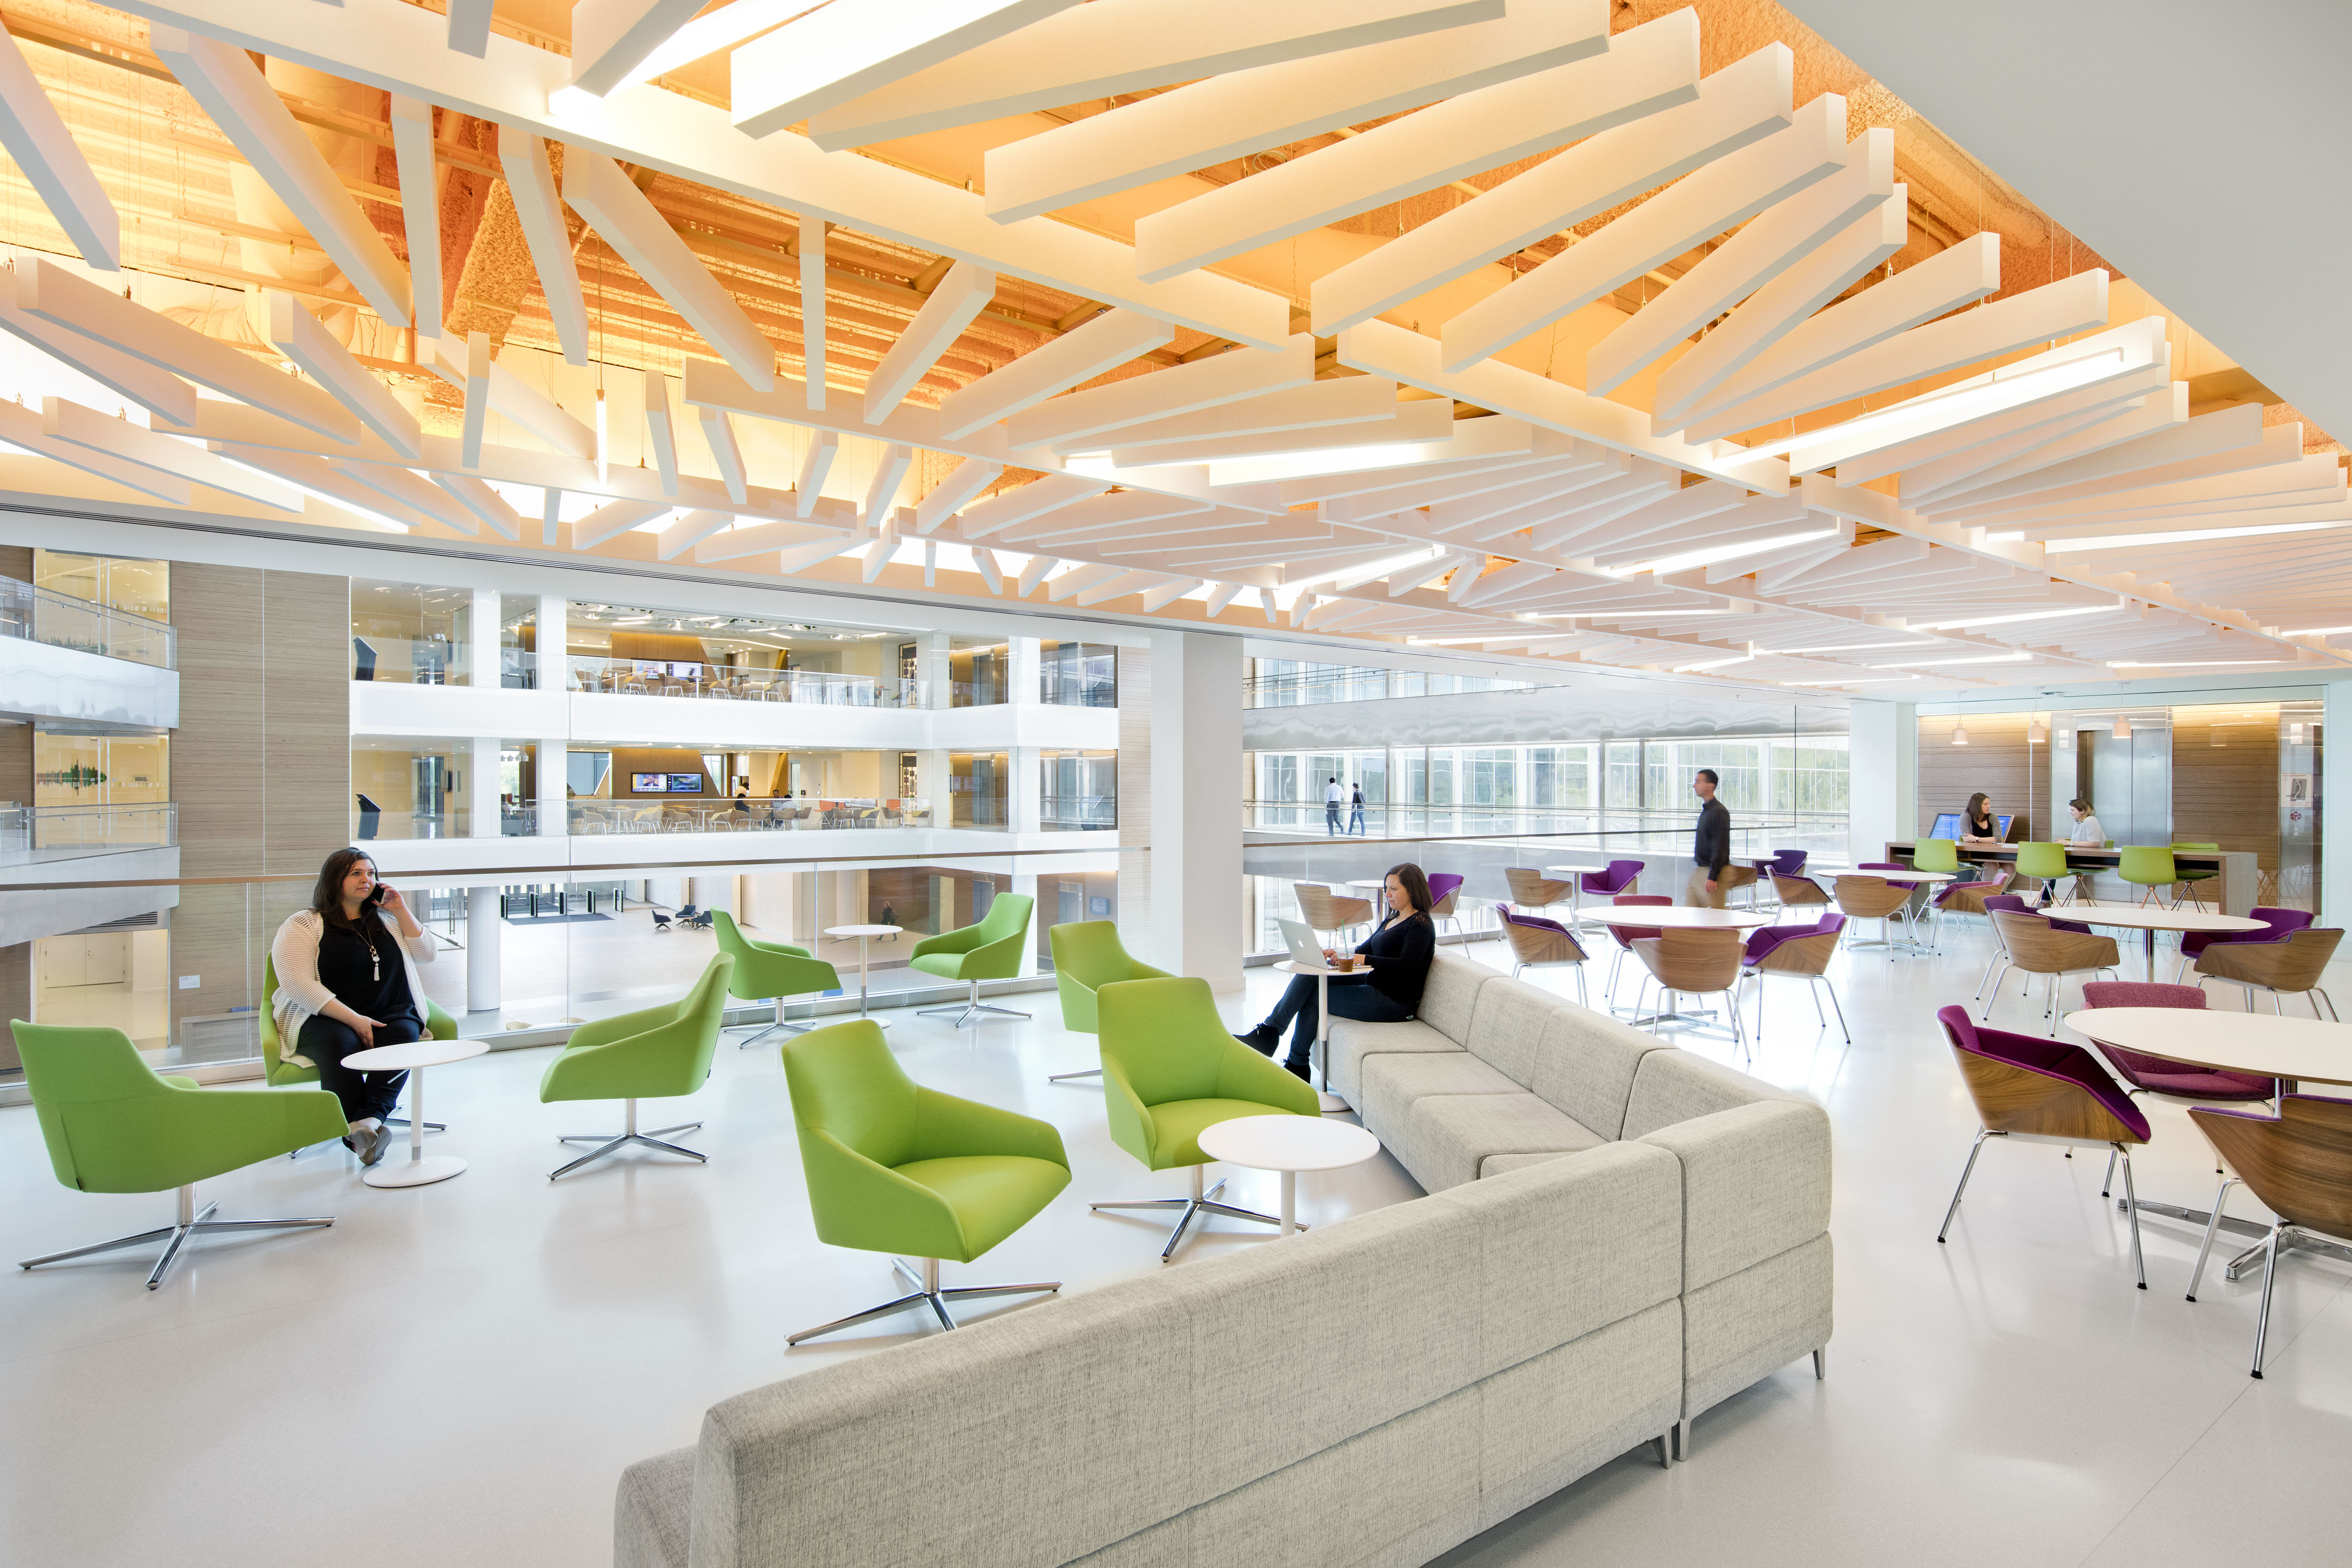 Bristol-Myers Squibb (BMS) workplace